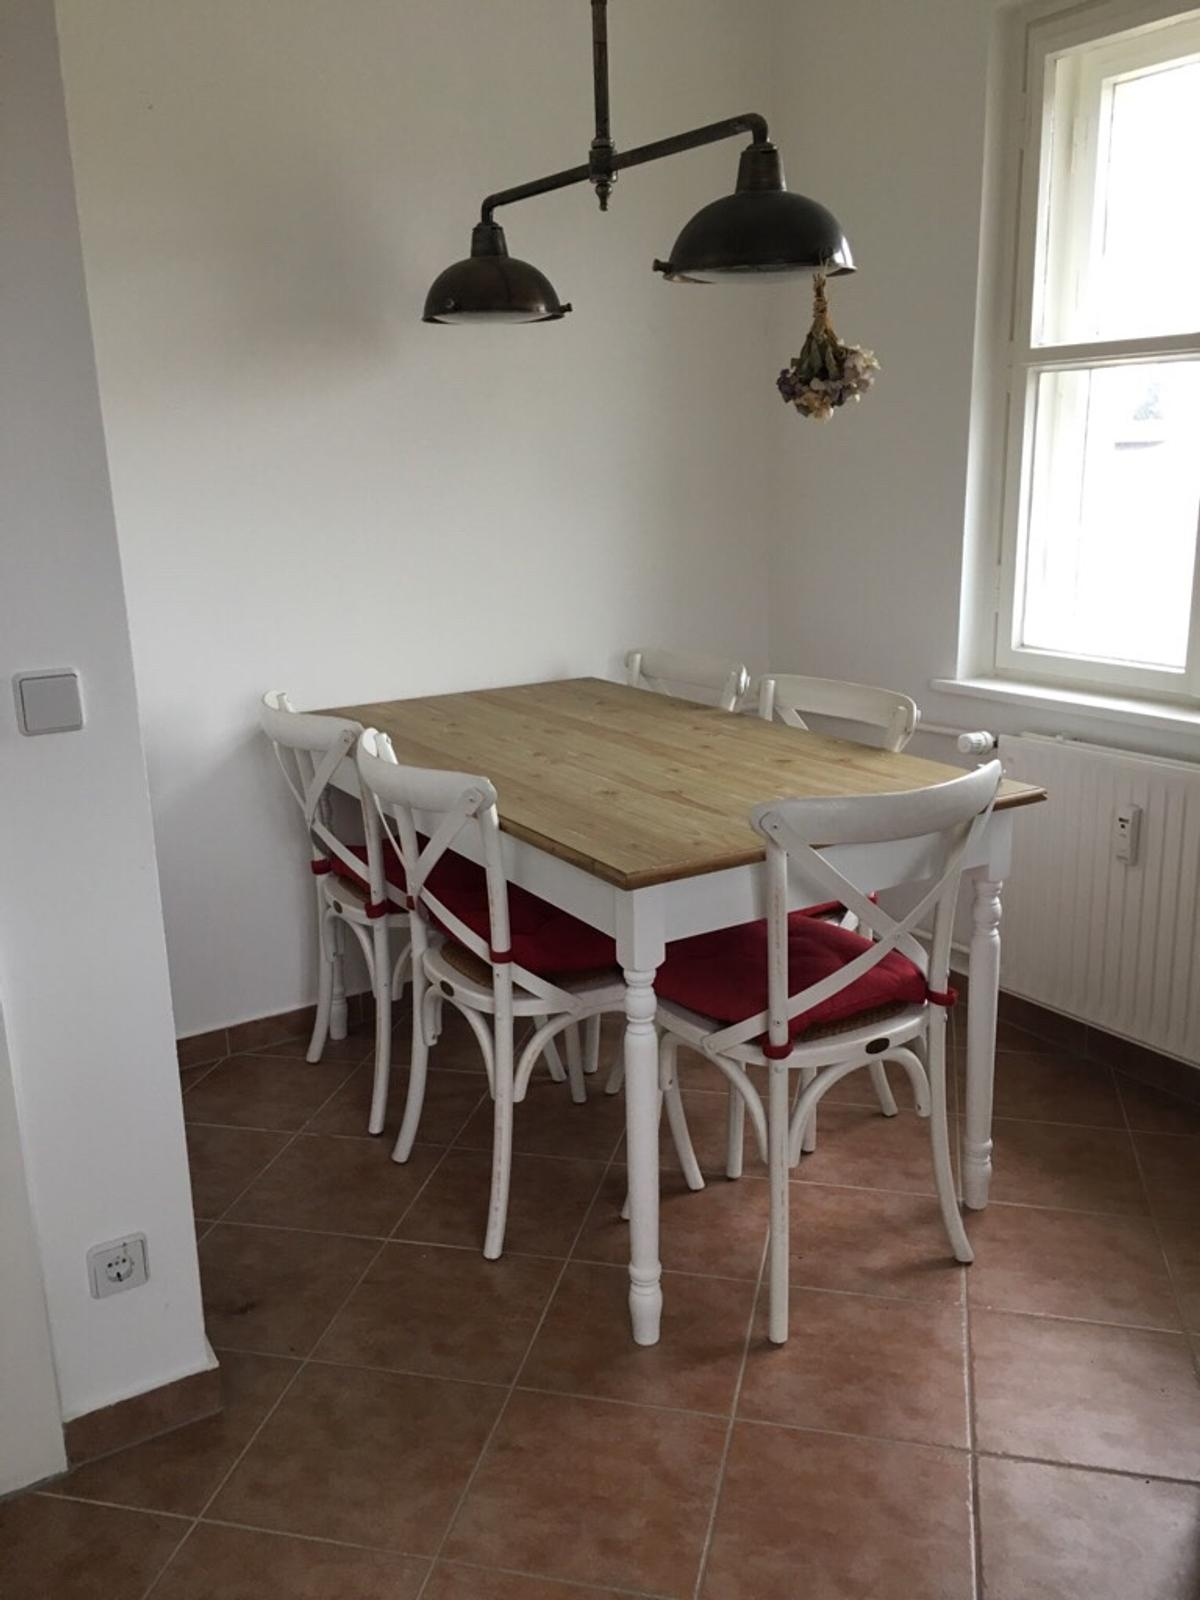 Esstisch Weiss Holz 150x80x85cm Rahaus In 14165 Berlin For 150 00 For Sale Shpock